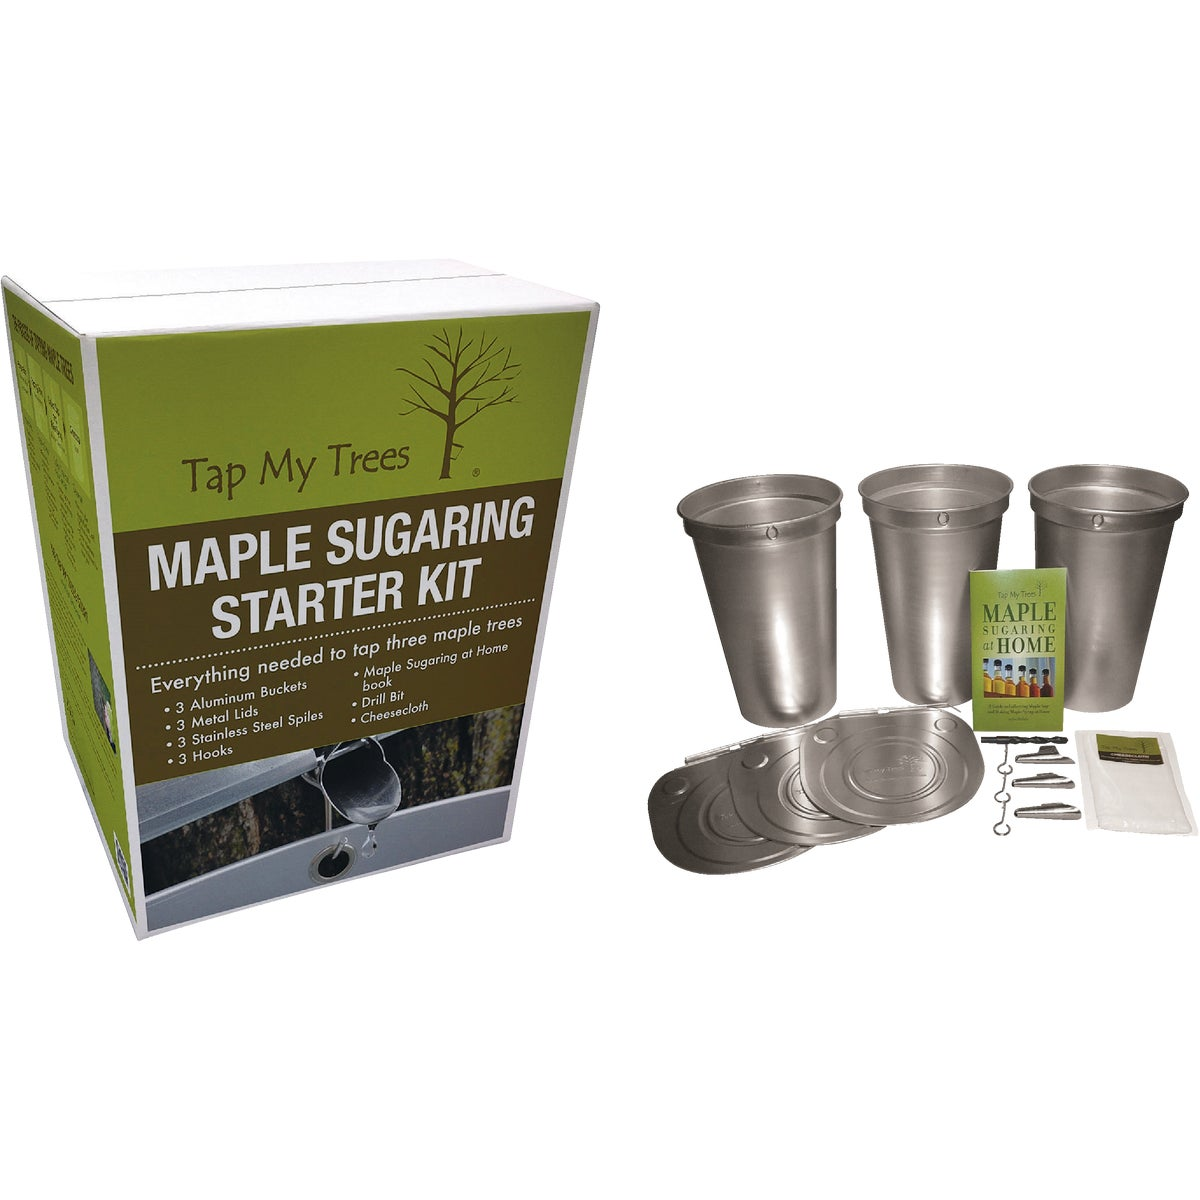 MAPLE SUGARING START KIT - TMT02220 by Tap My Trees